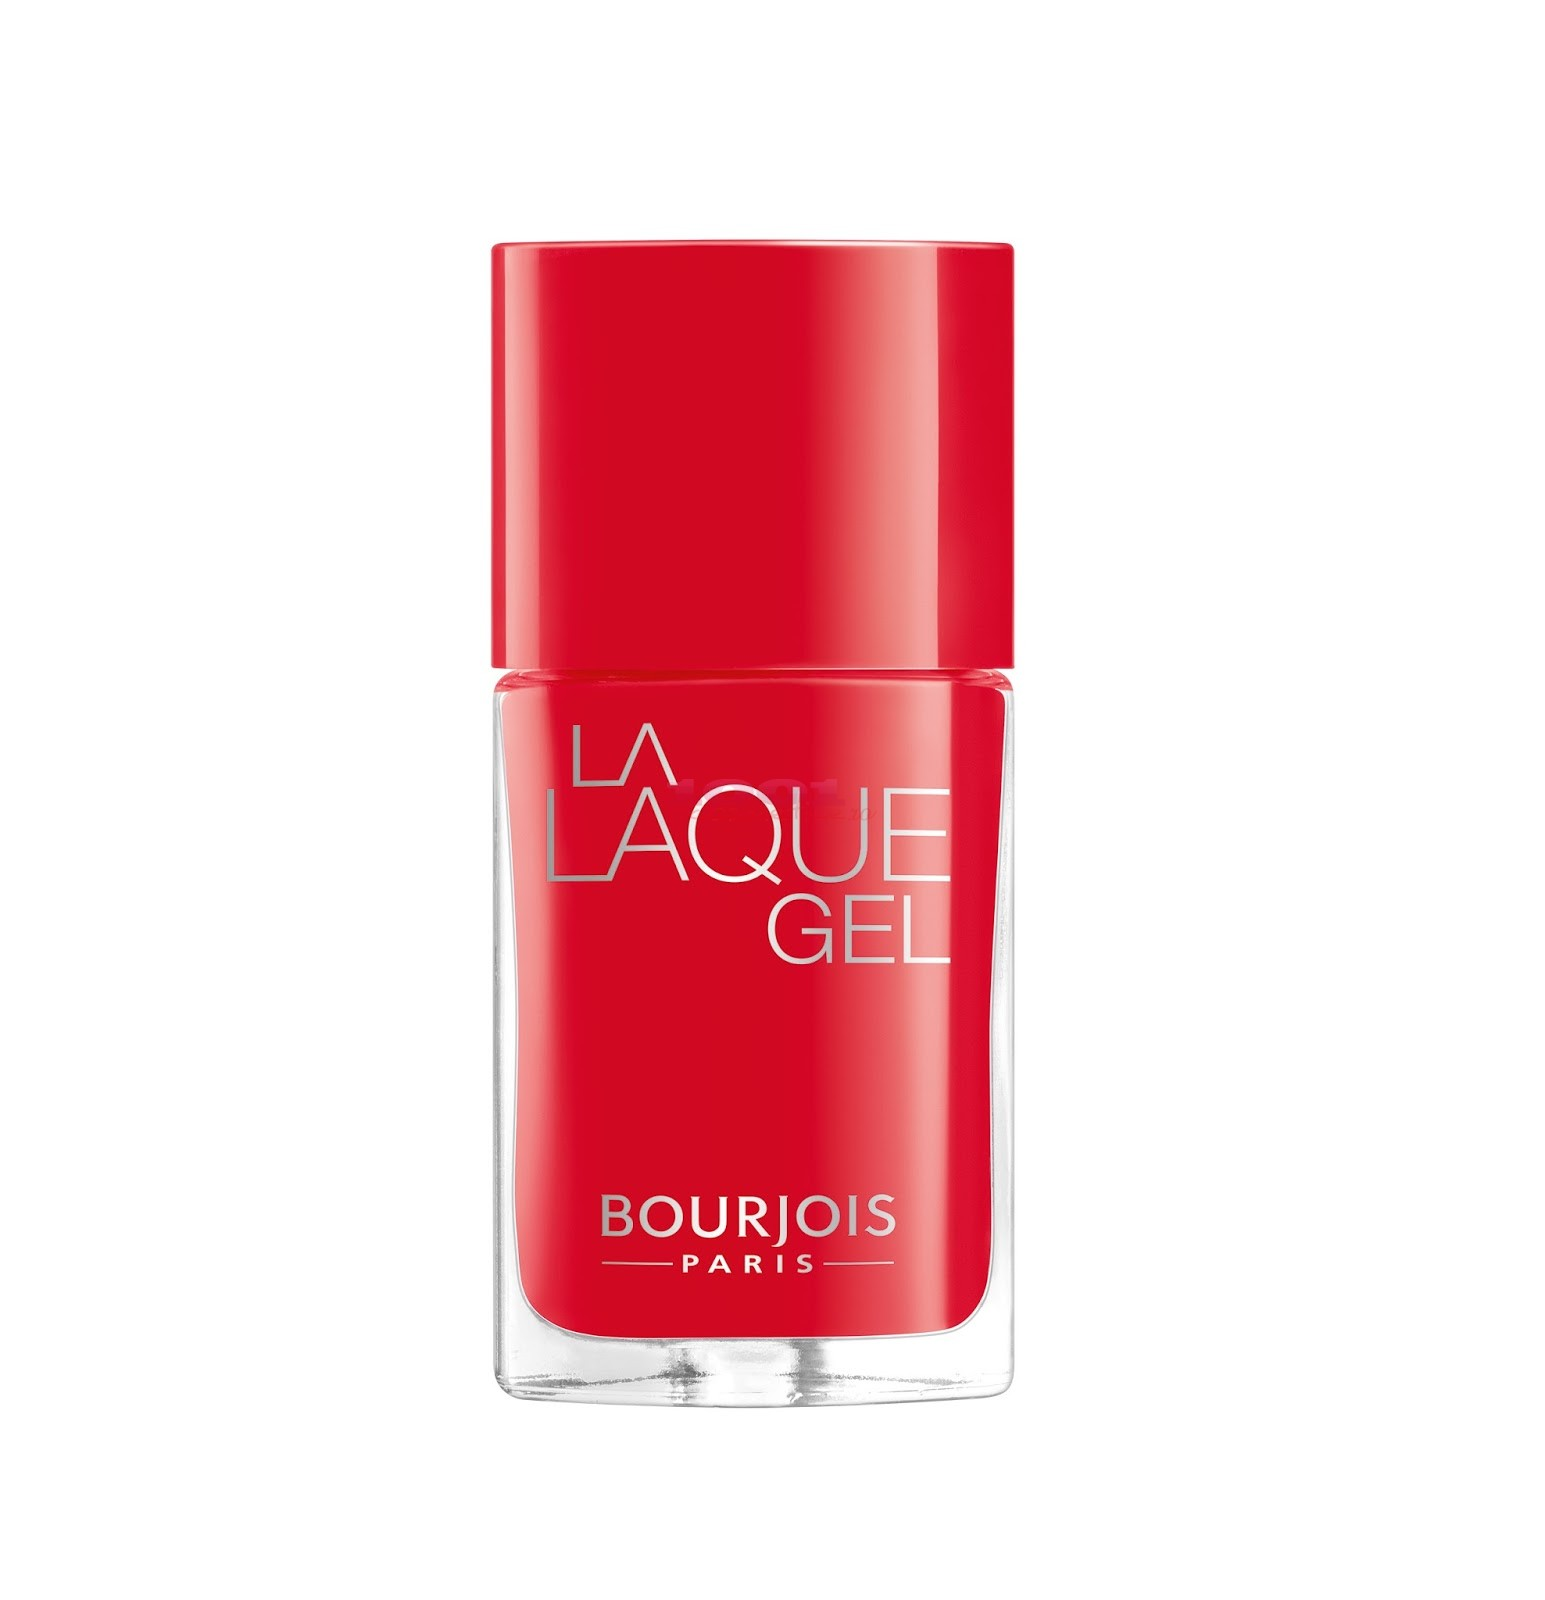 BOURJOIS LA LAQUE GEL AREYOU READY 05